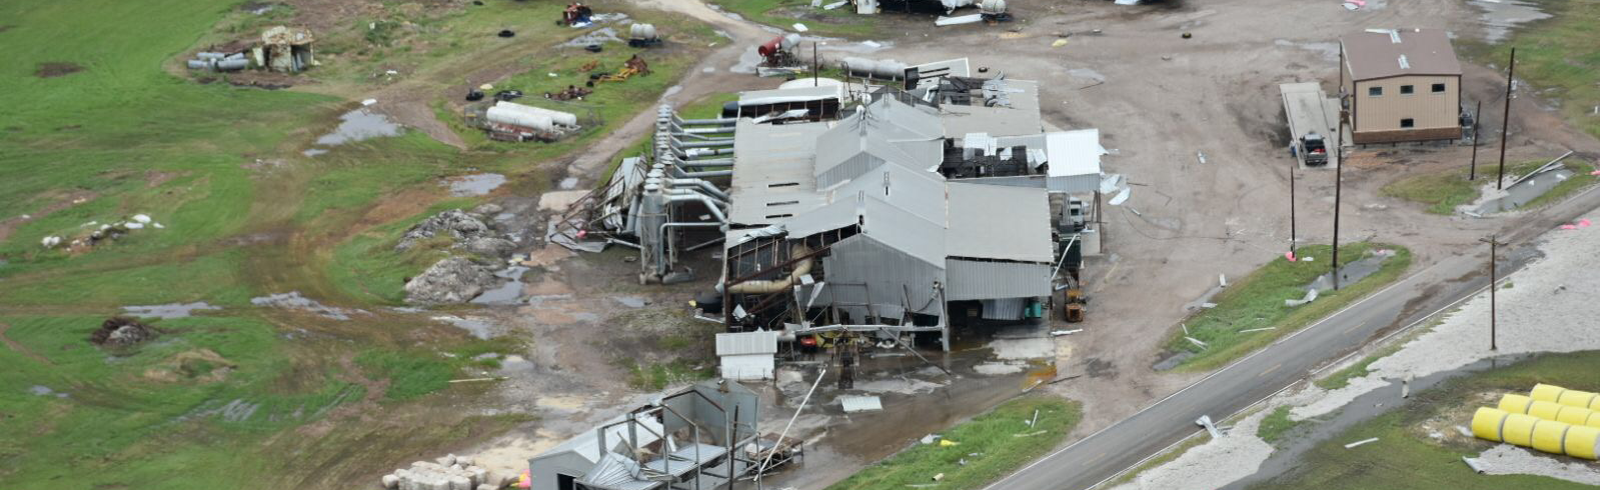 Hurricane Harvey Gin Damage Aerial